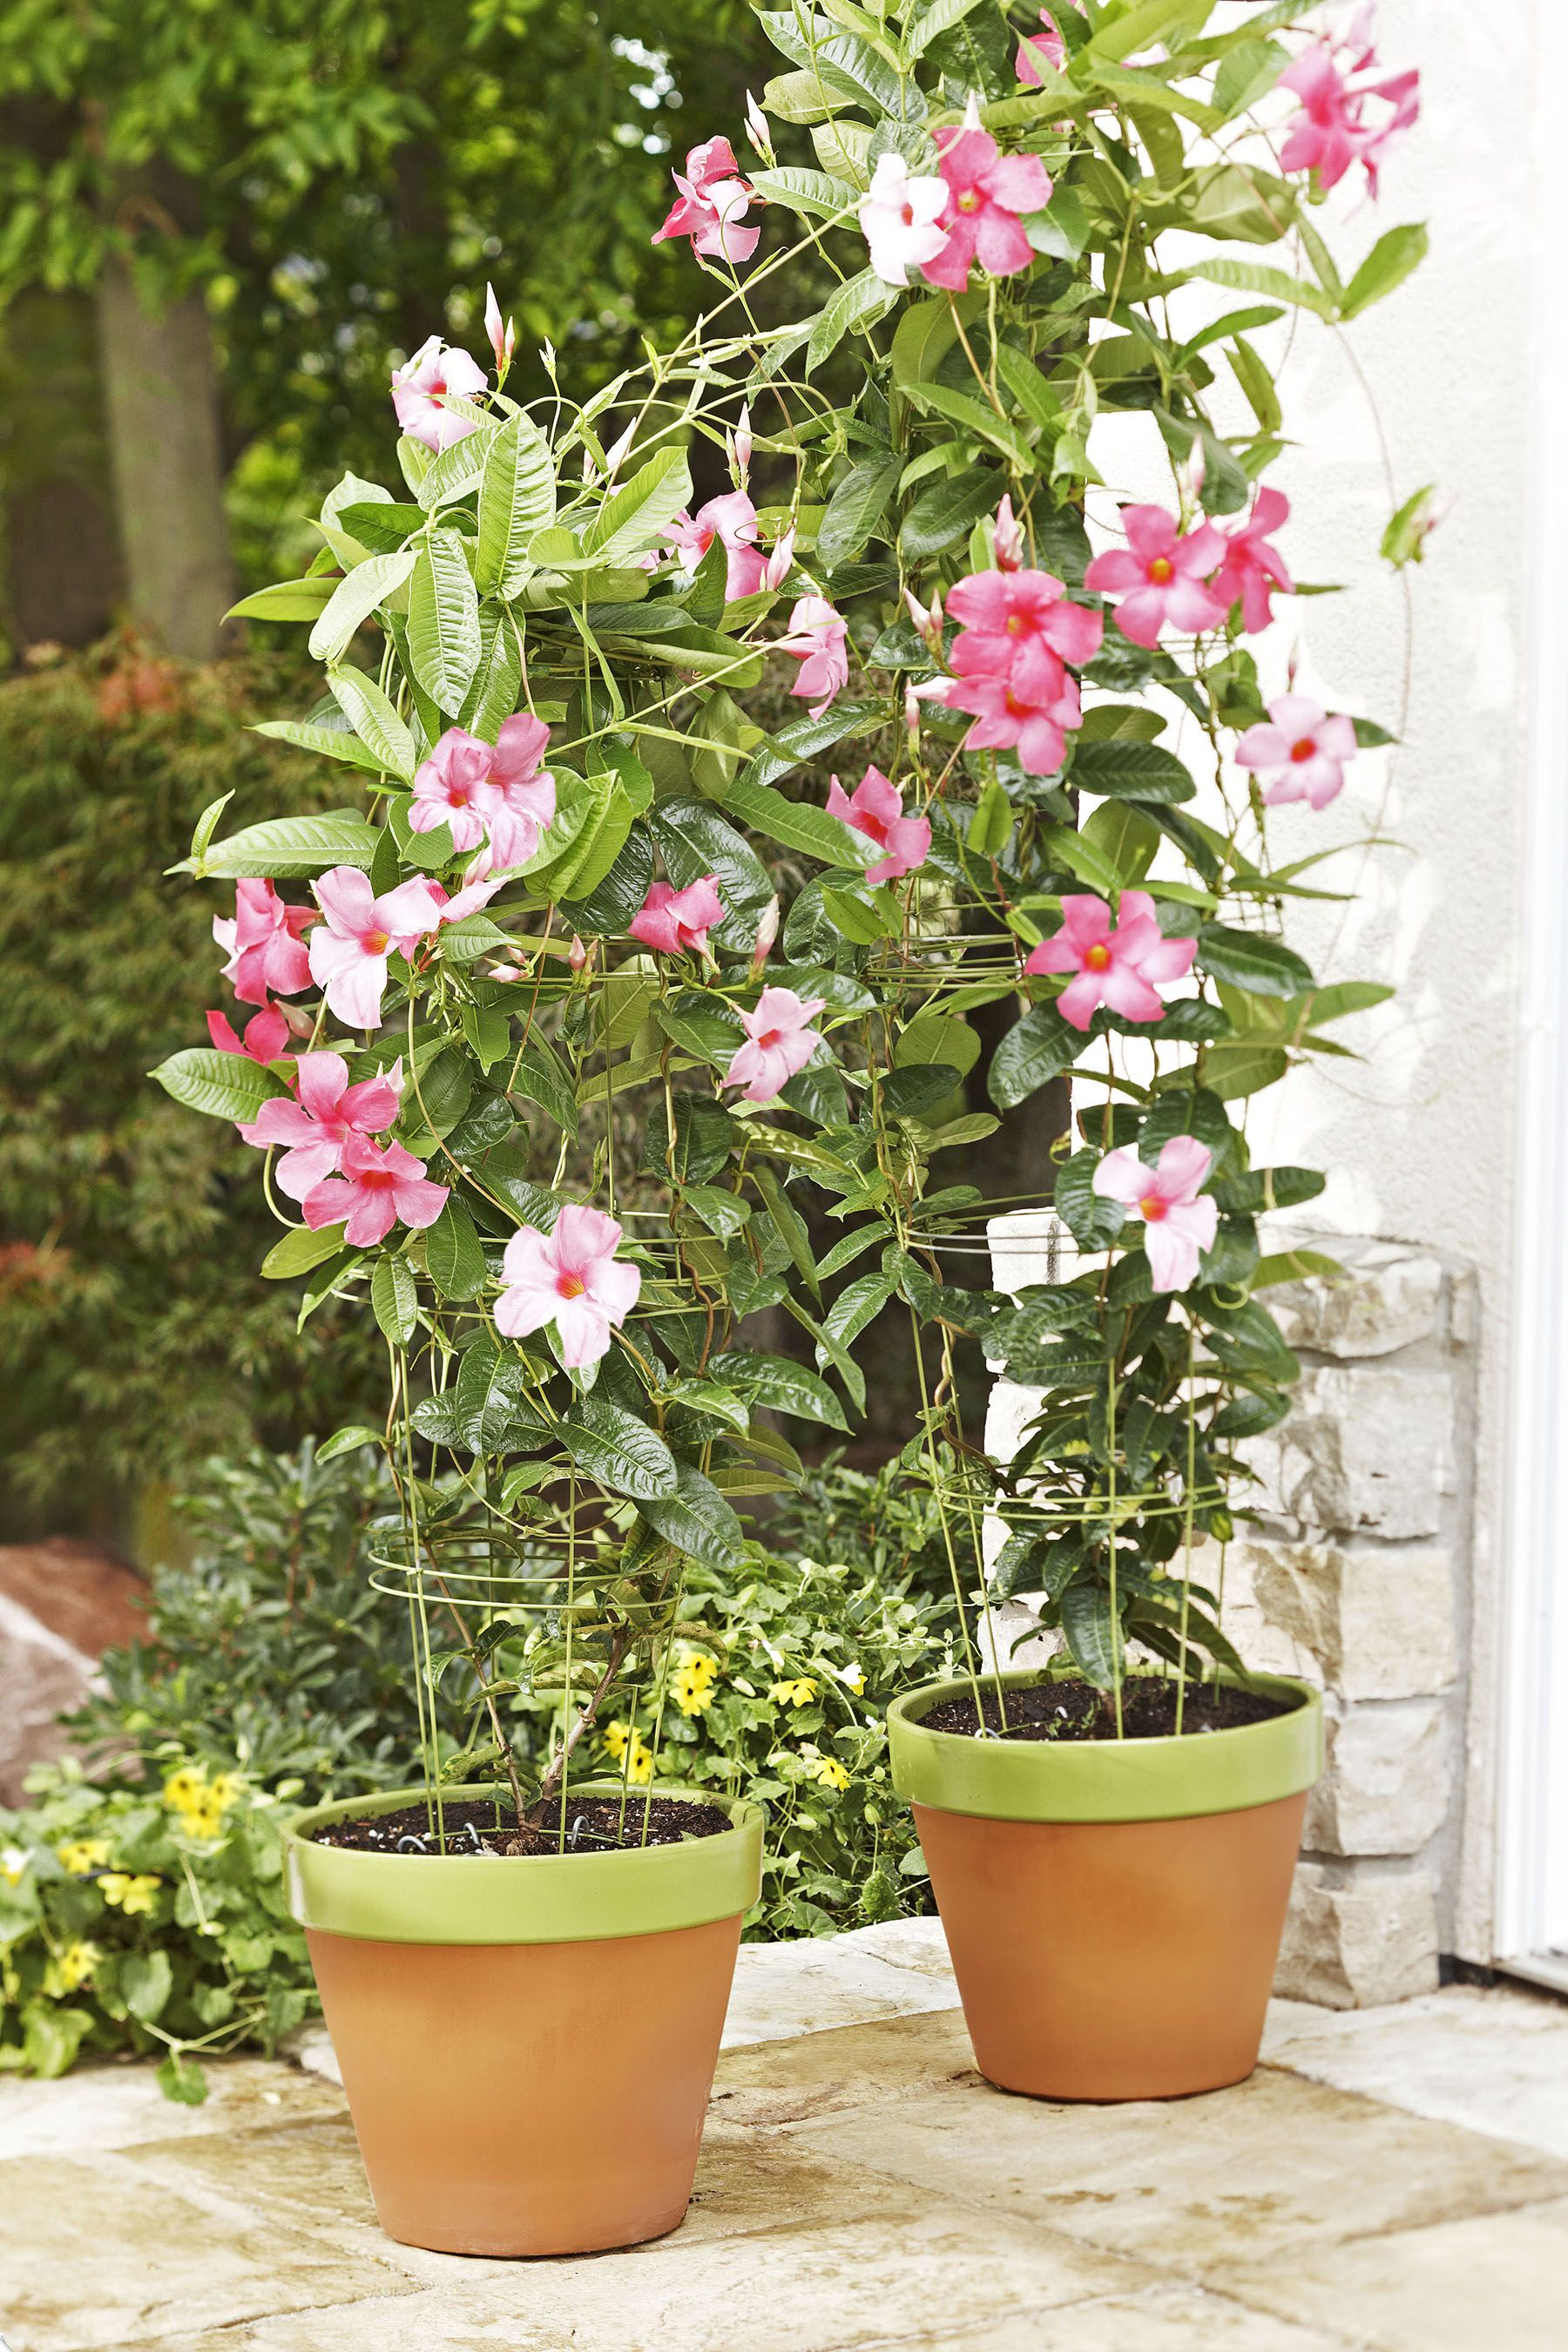 Create a flowerpot trellis using tomato cages and cable